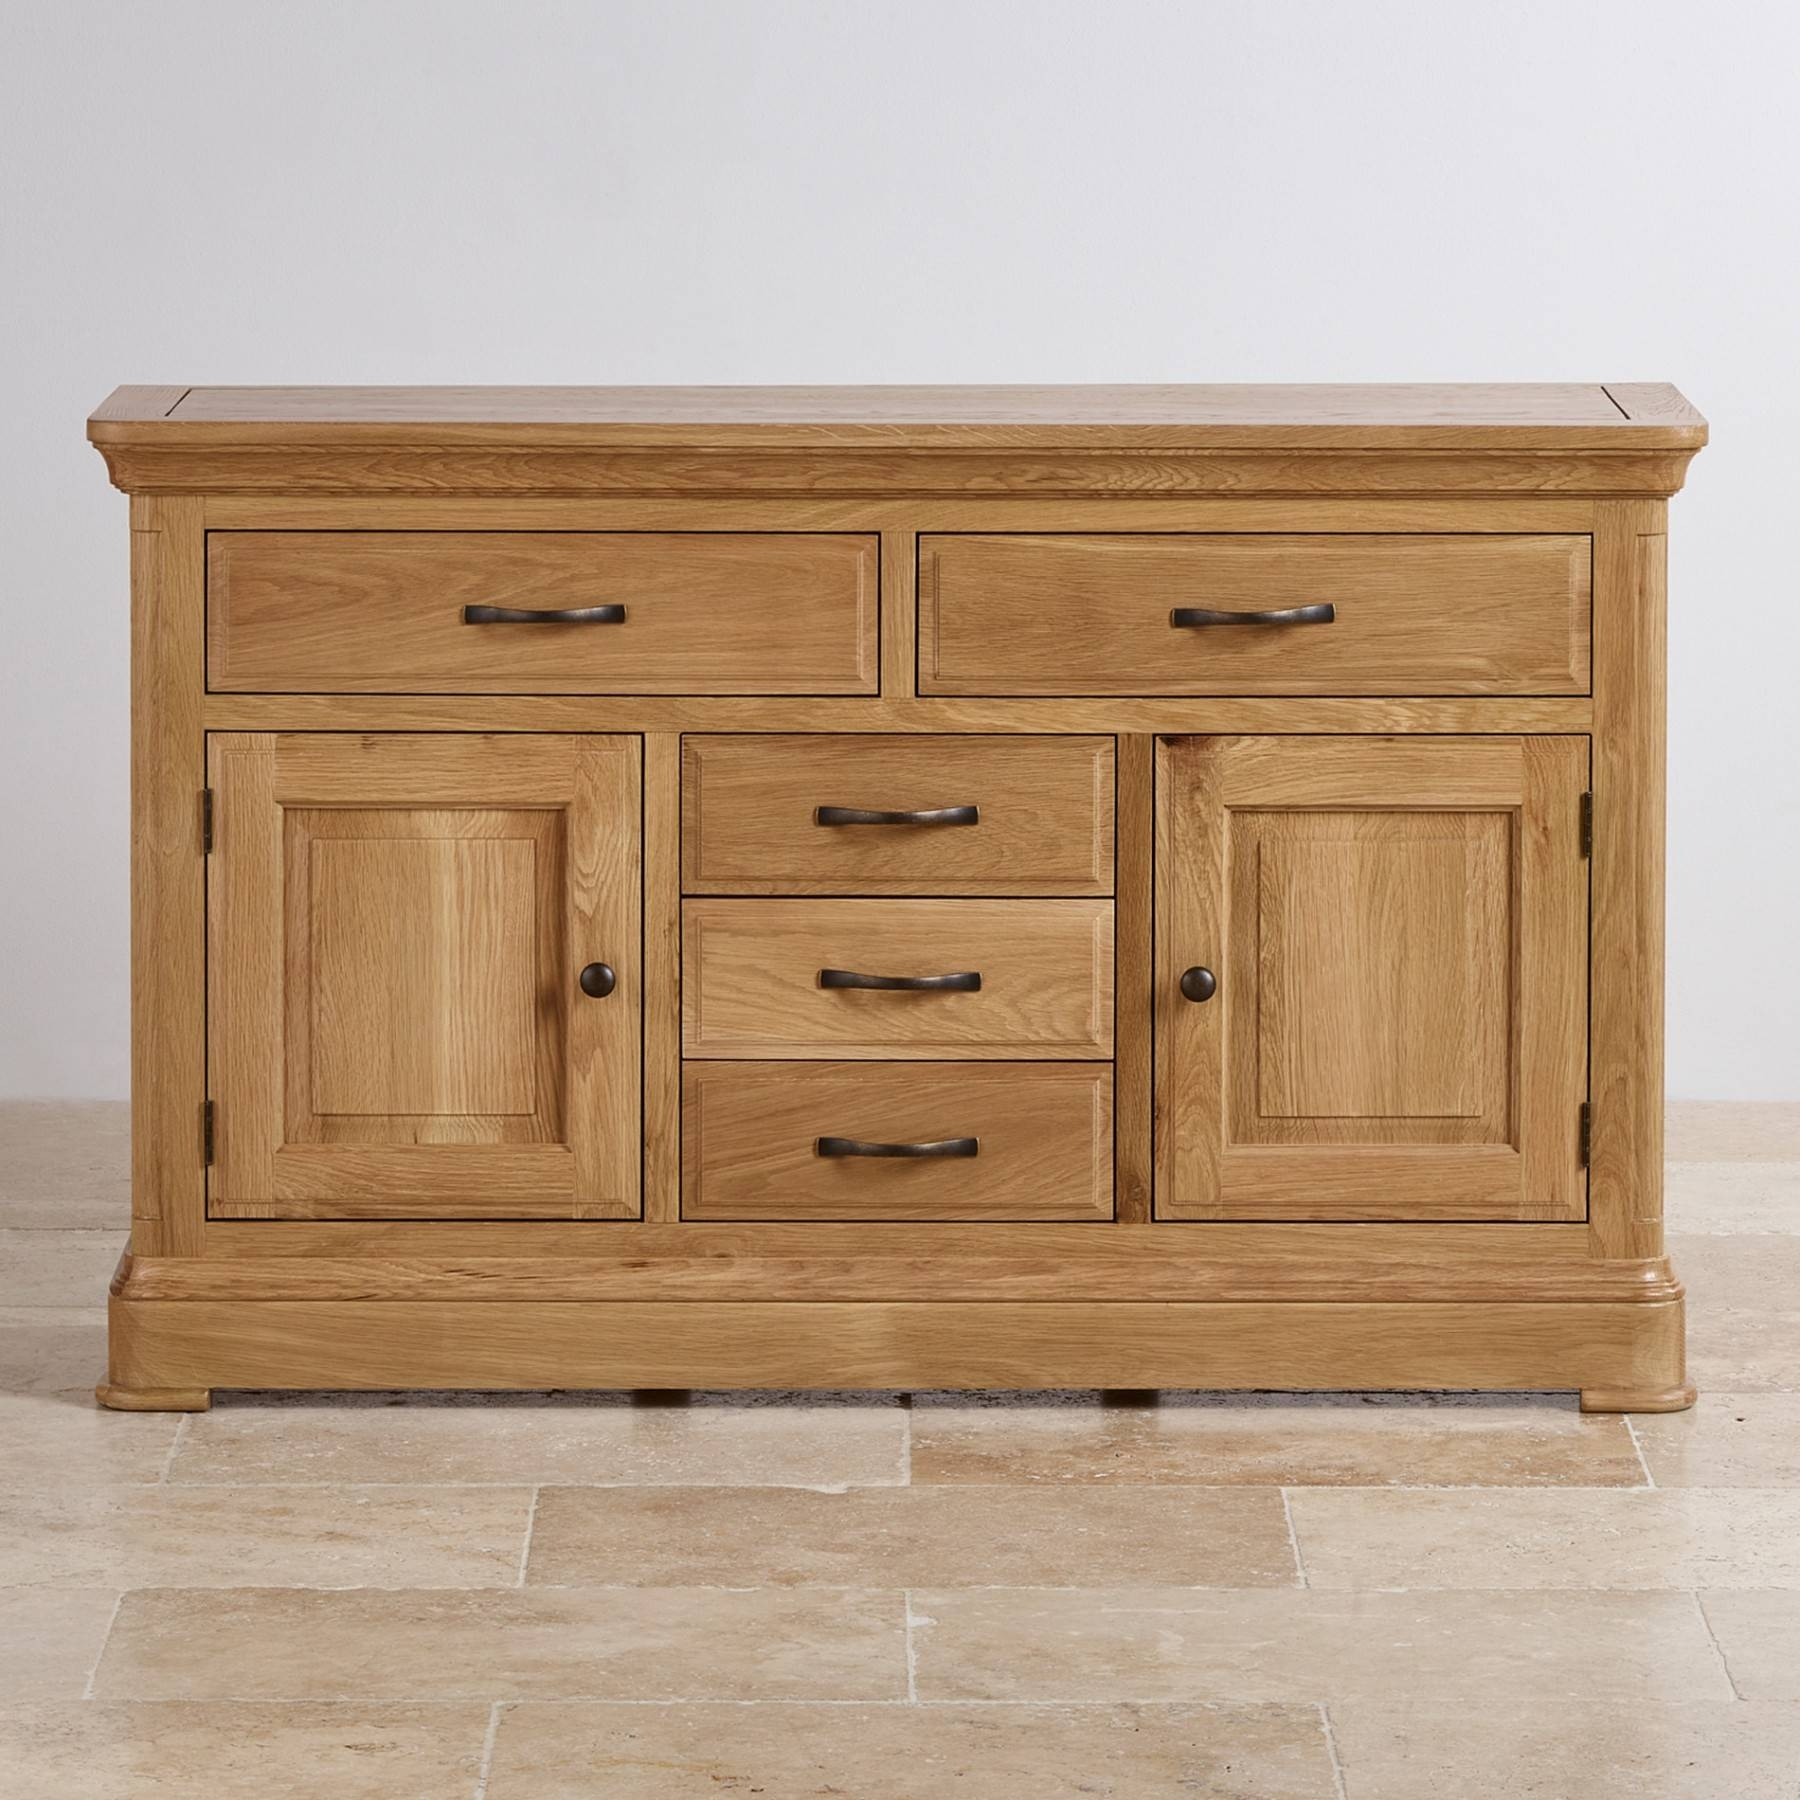 Canterbury Natural Solid Oak Large Sideboard | Sideboards | Dining With Regard To Most Up To Date Natural Oak Sideboards (#5 of 15)